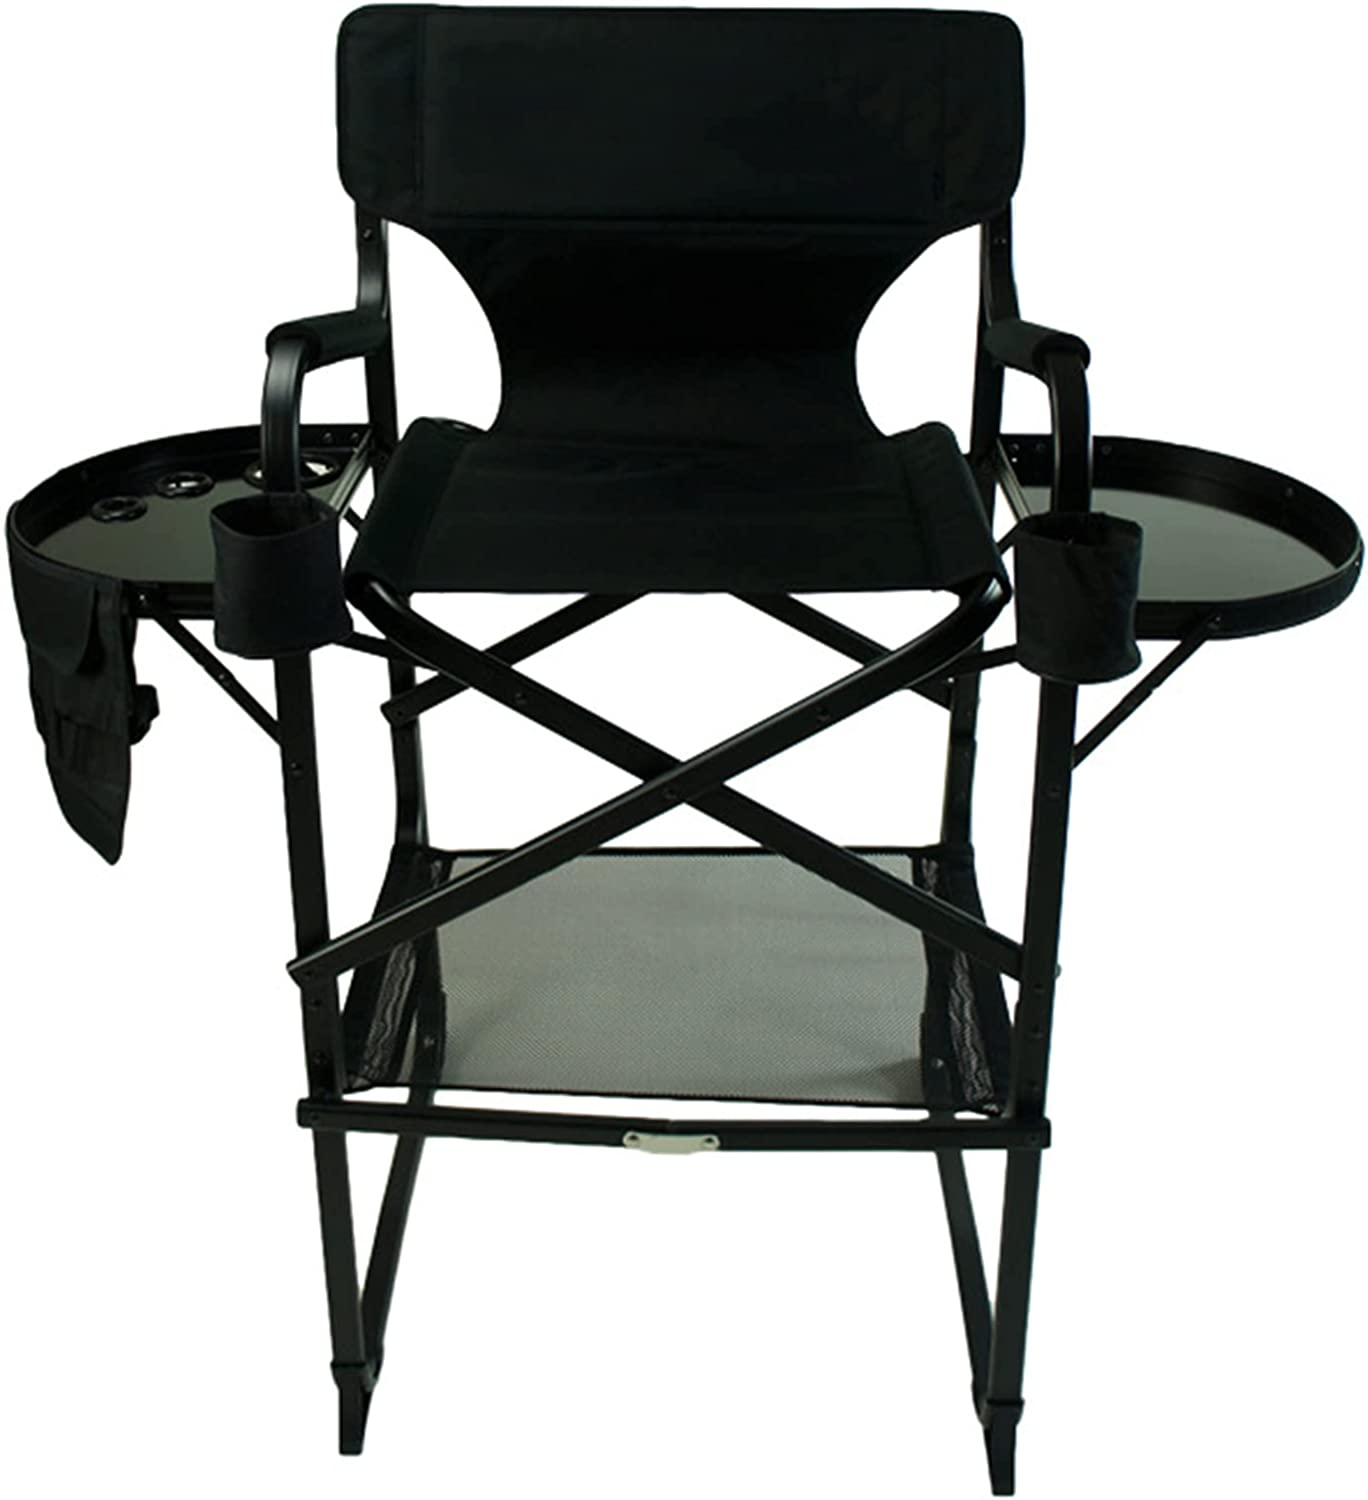 Tall Director Chair with Side Table and Special Campaign Max 76% OFF A Brush Bag Makeup